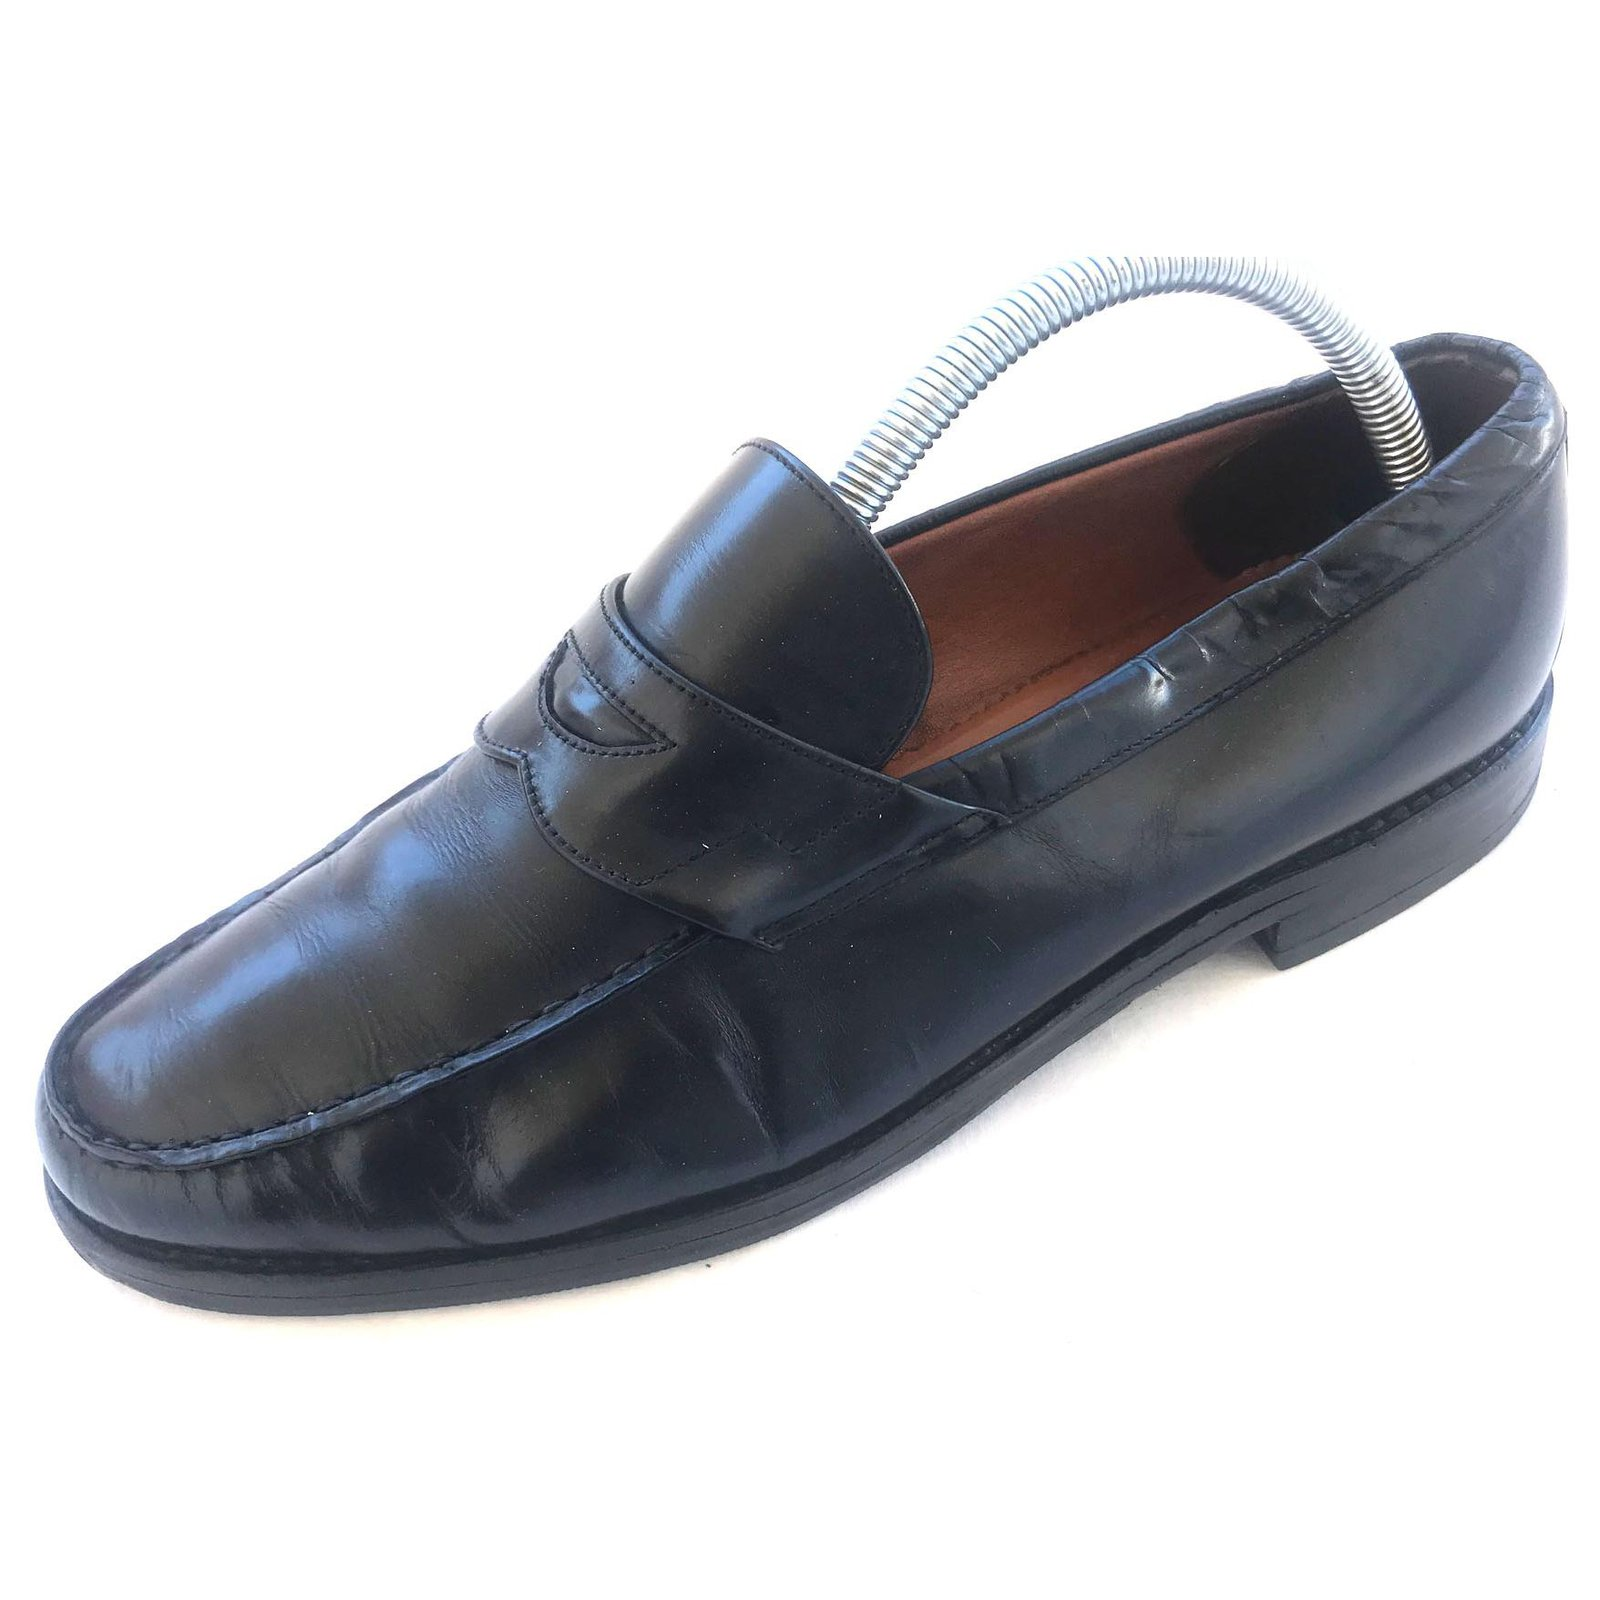 Bally Penny Loafers Slip ons Patent